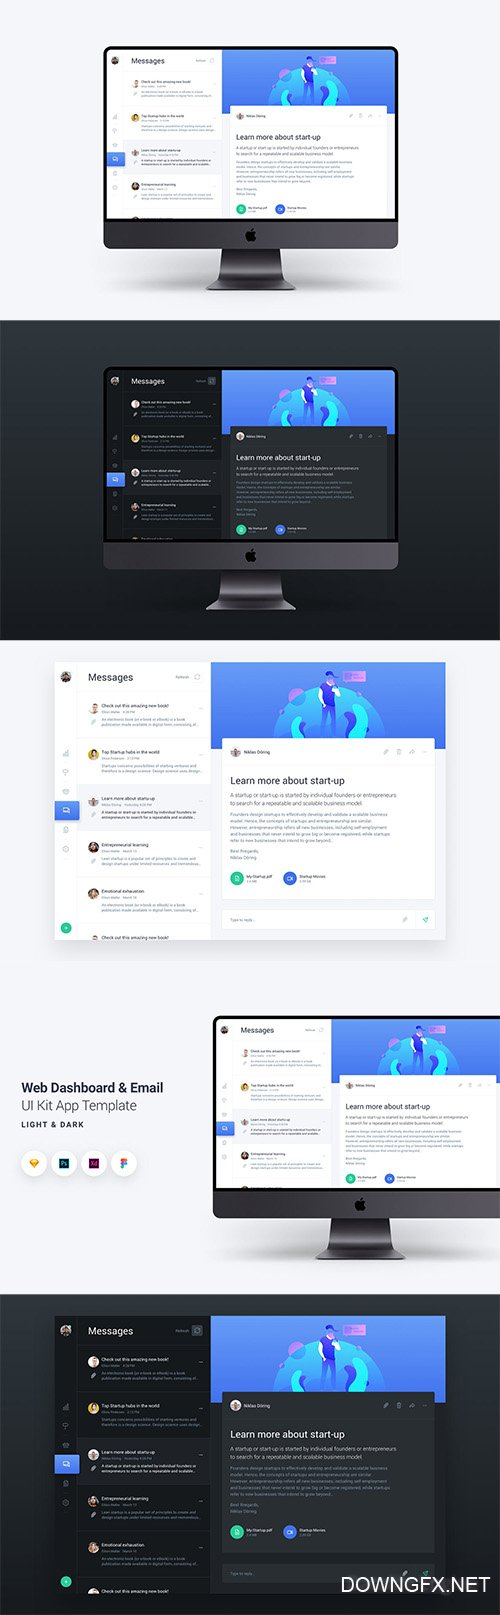 Web Dashboard & Email UI Kit App Template 2